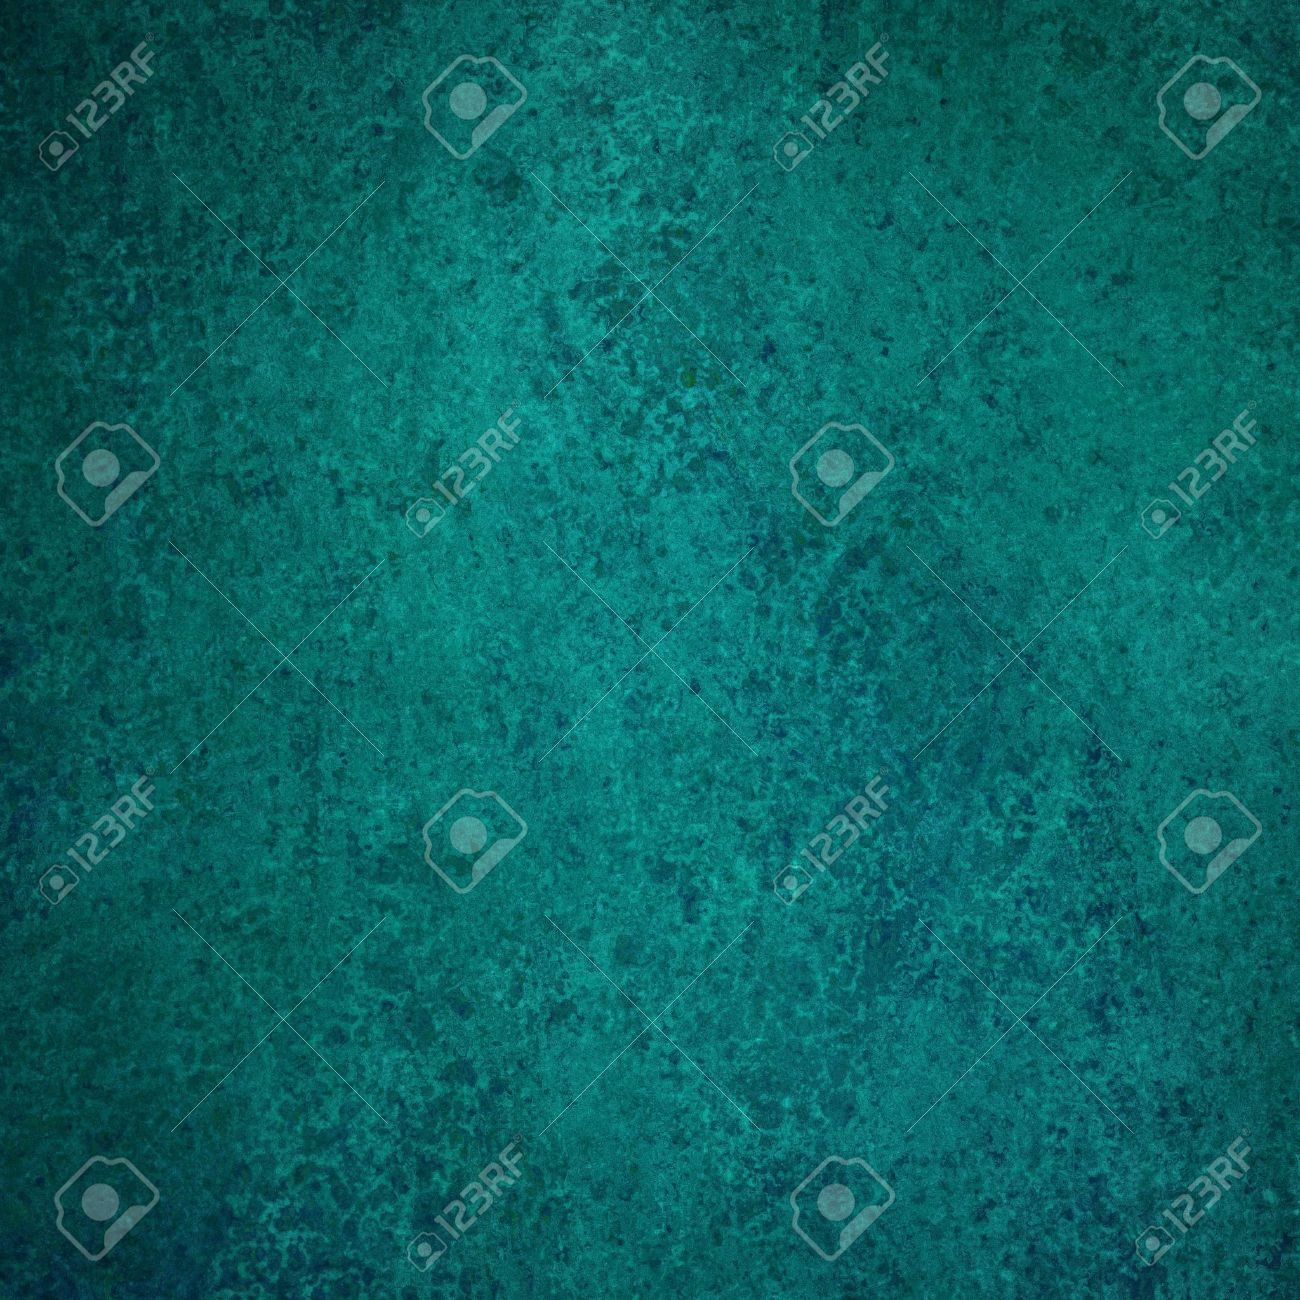 Stock Photo   Teal Blue Background Texture Paper, Faint Rustic Grunge Paint  Design, Old Distressed Blue Wall Paint